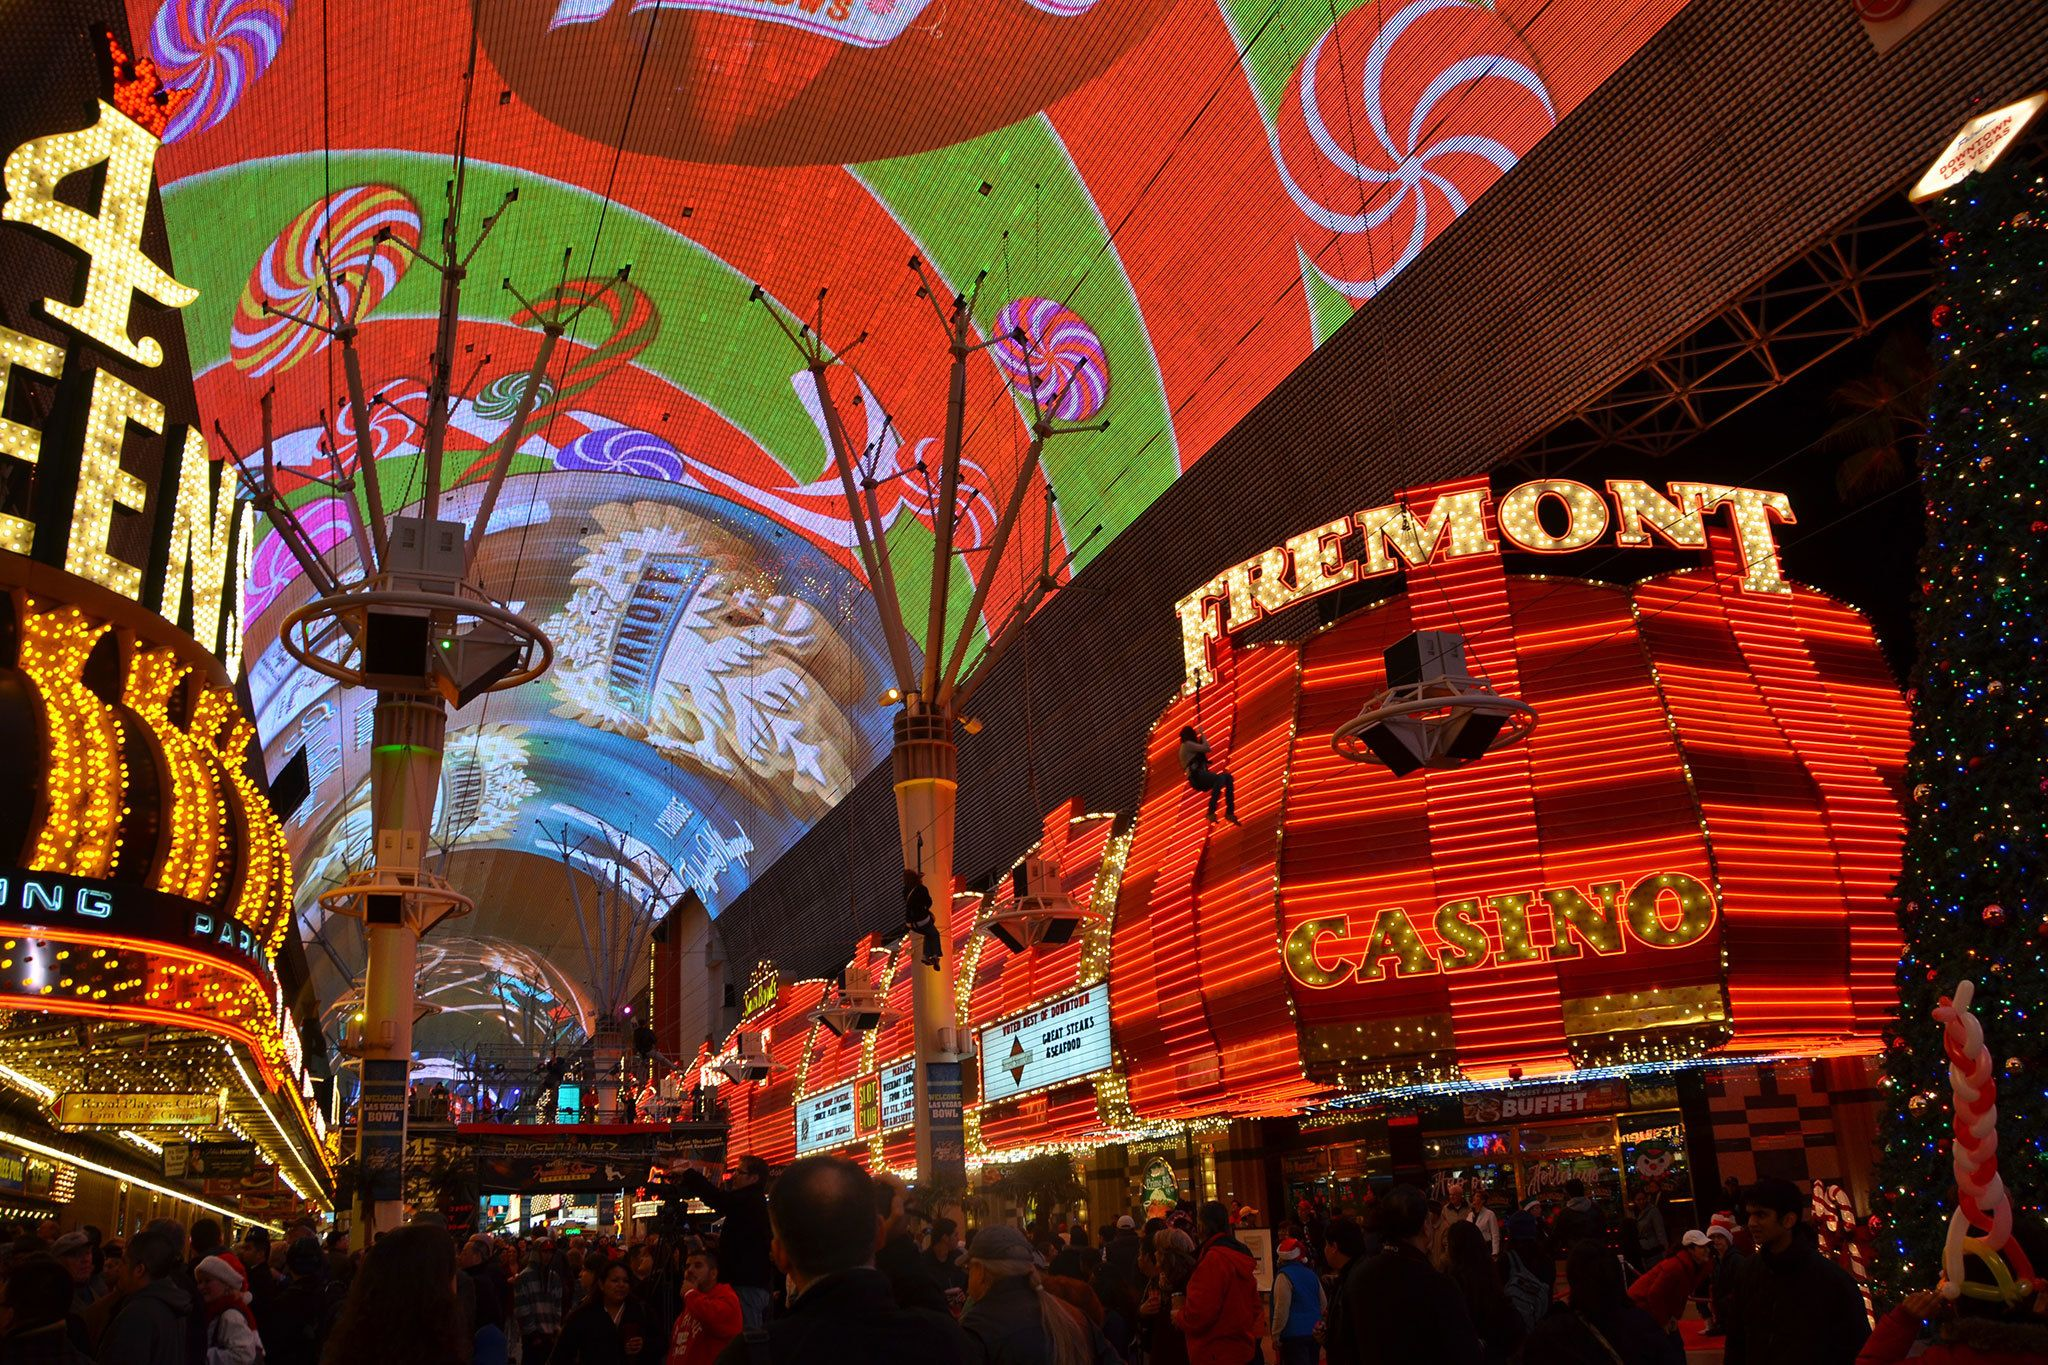 Fremont Street Experience $32M Canopy Upgrade Coming In 2019